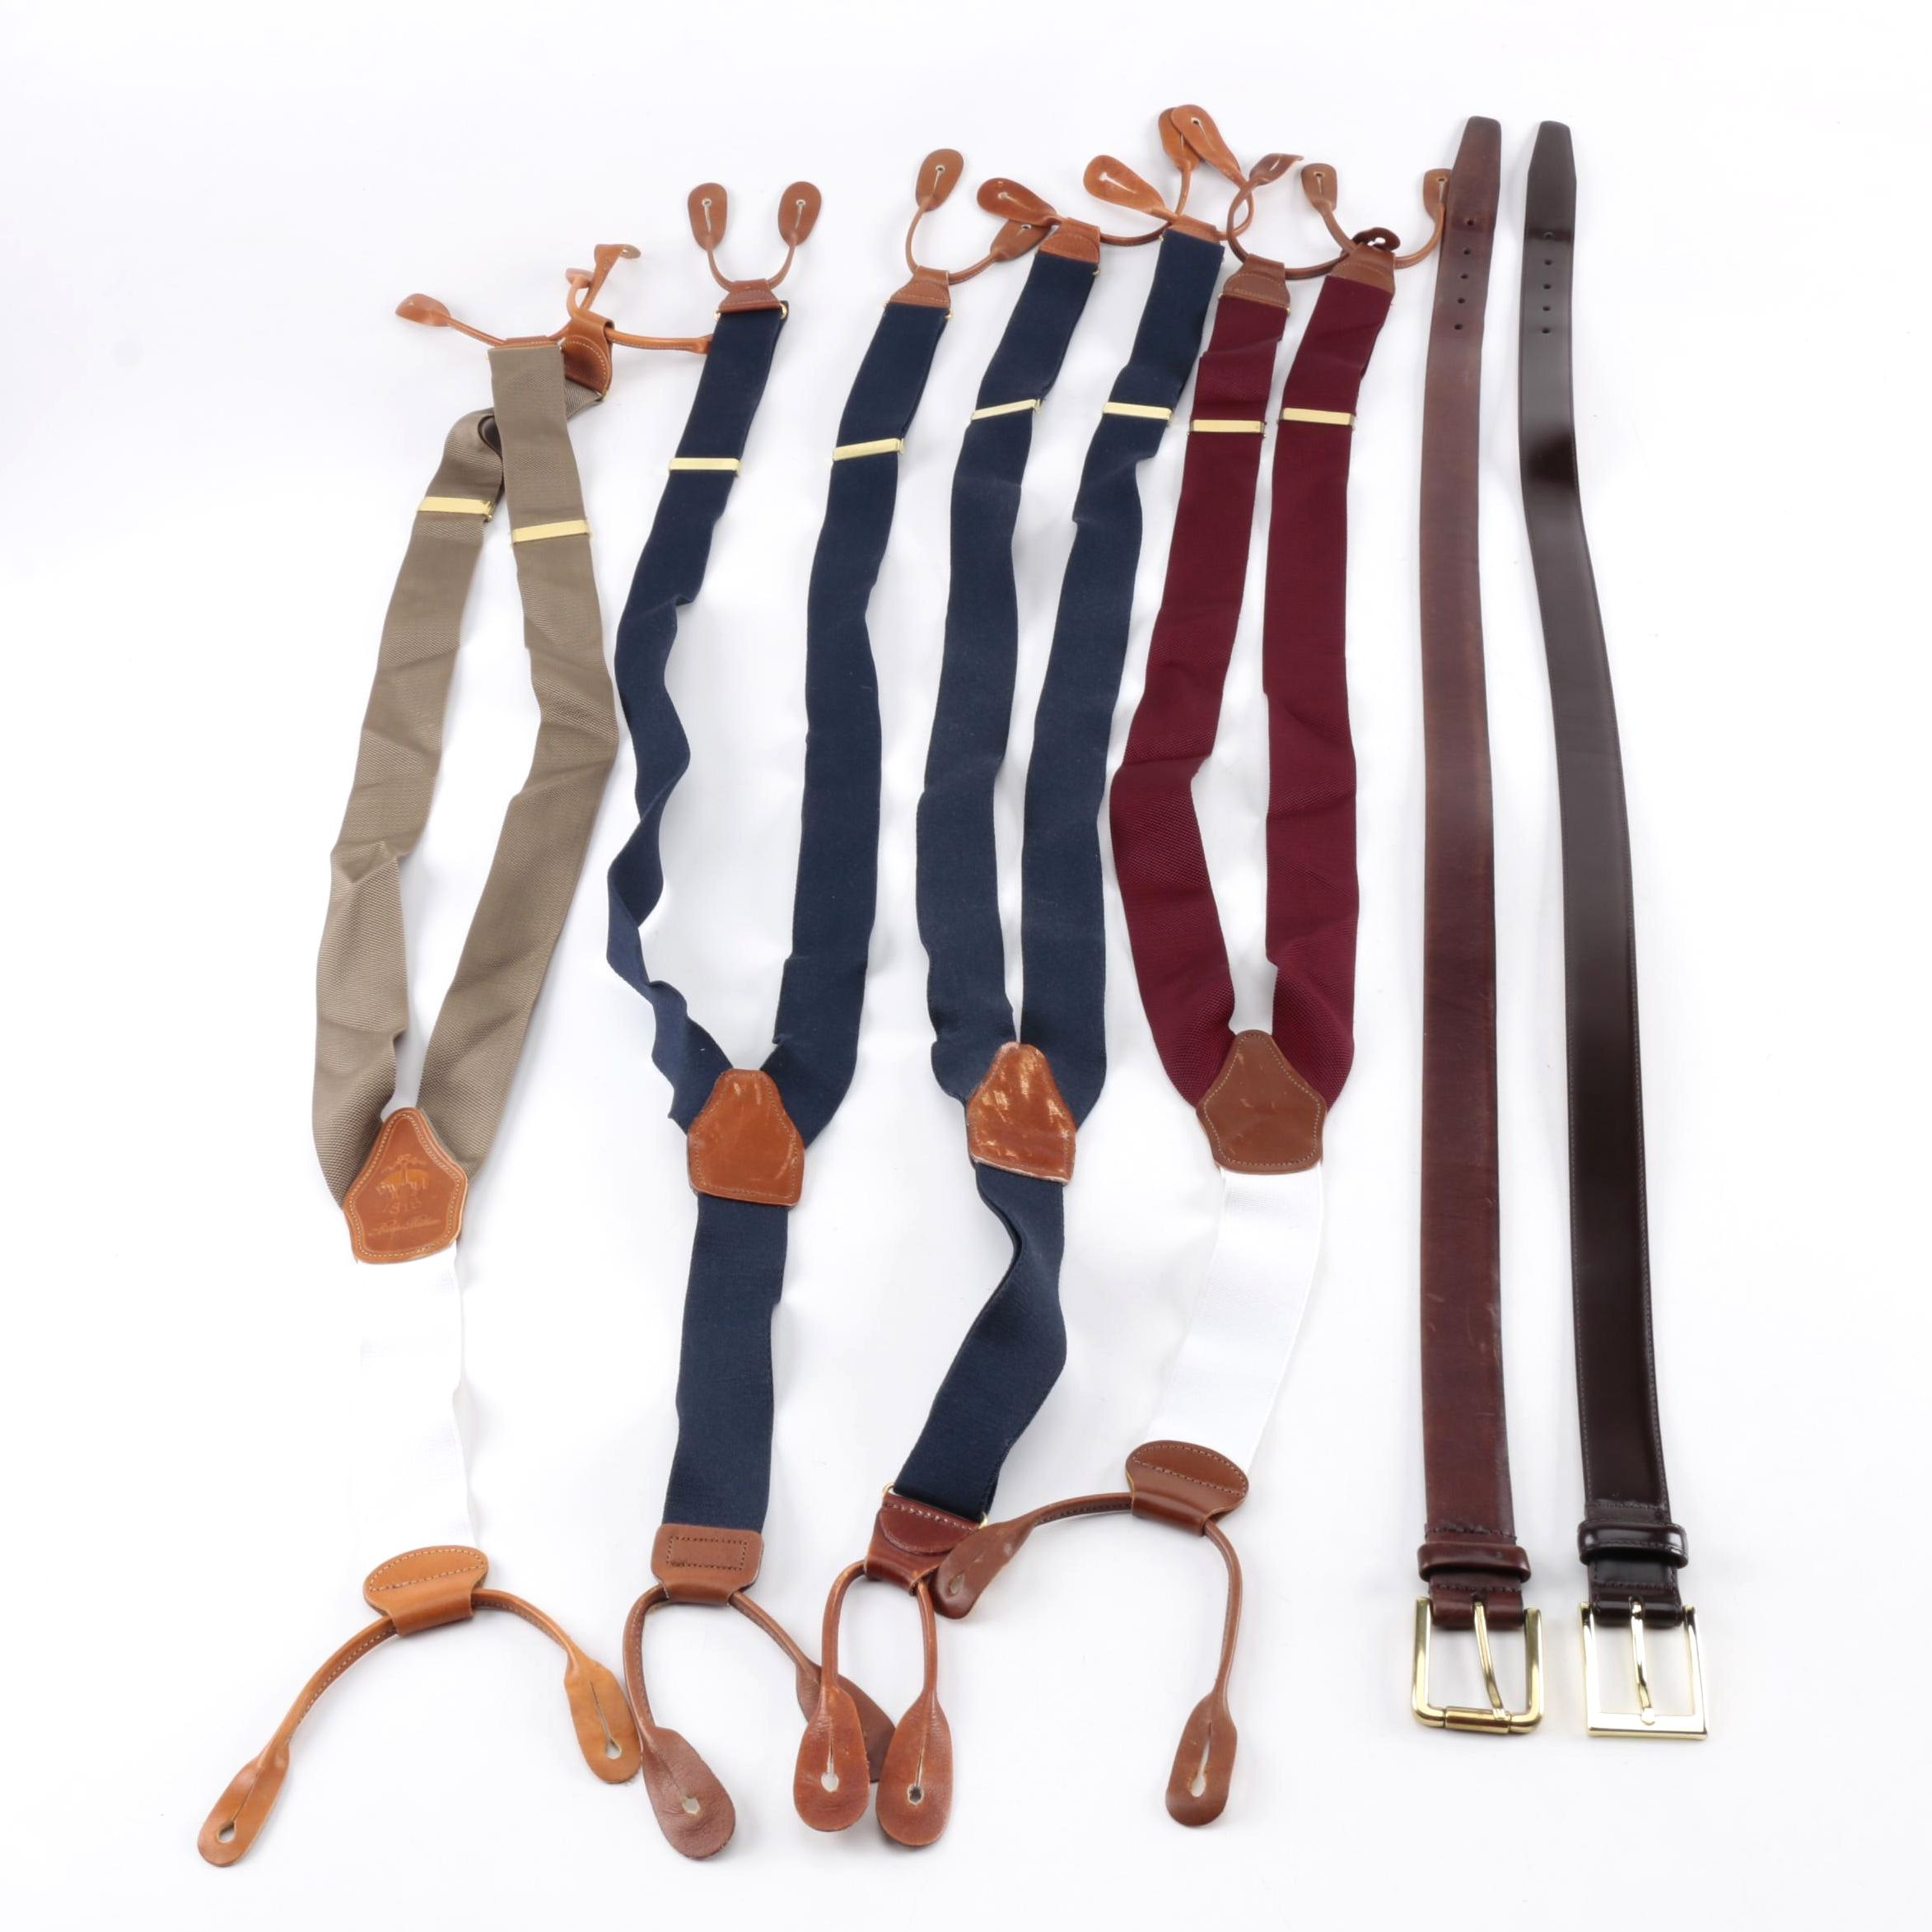 Men's Suspenders and Belts with Brooks Brothers